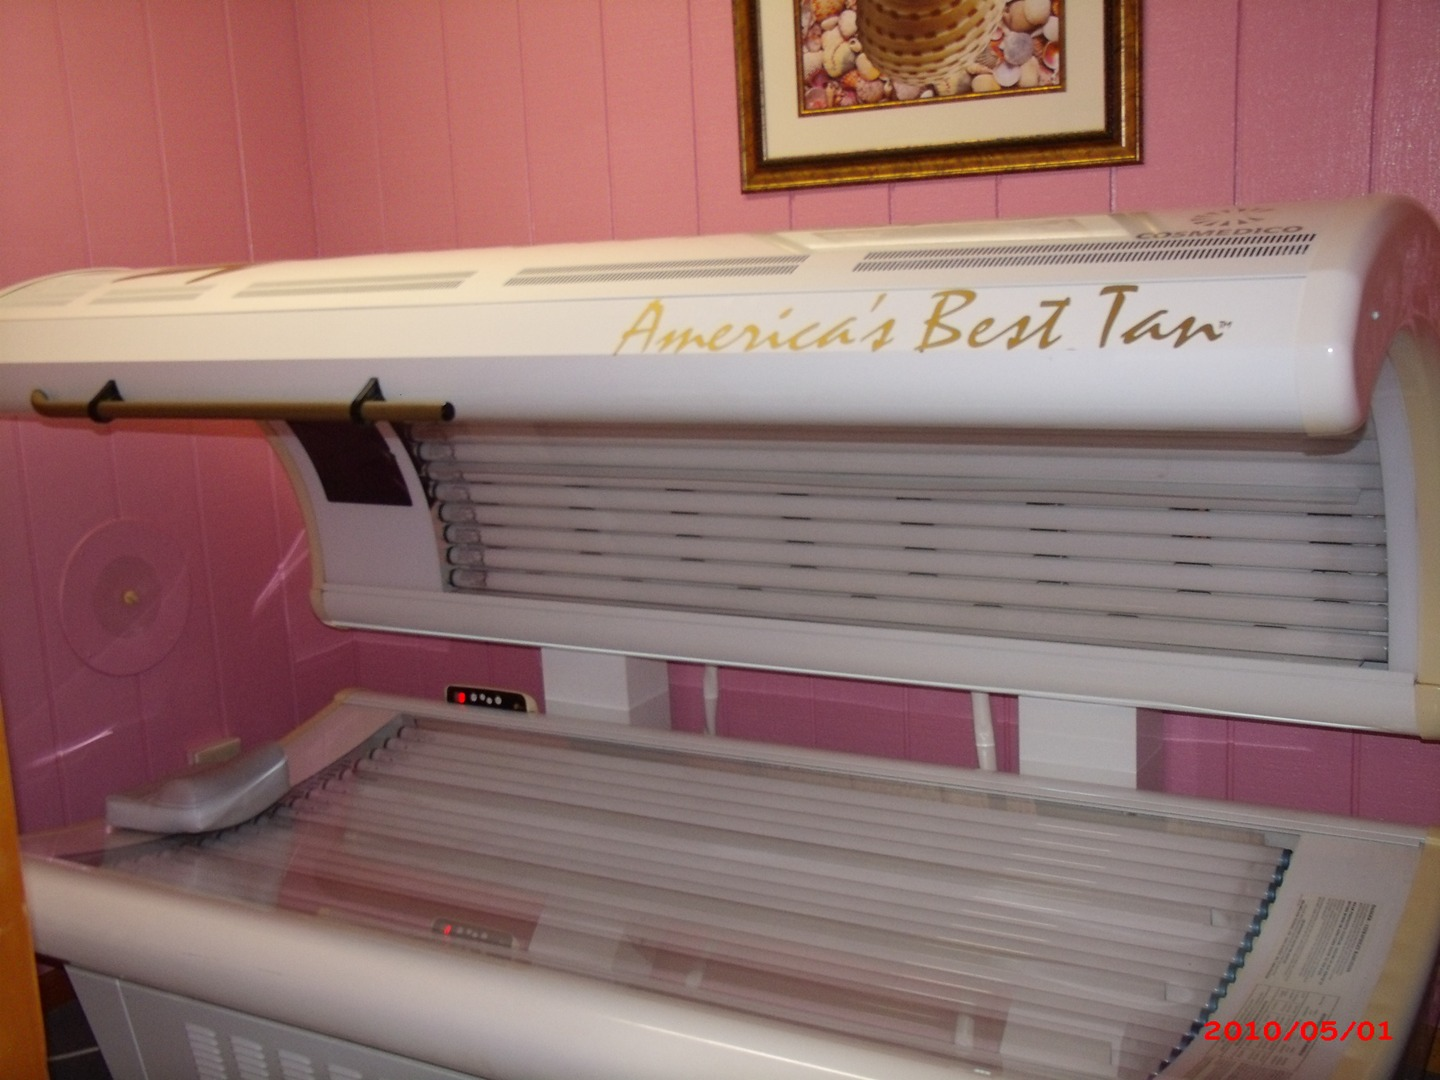 wolff health beauty lamp beds bed tanning overstock for shipping product solar systems storm free sale today